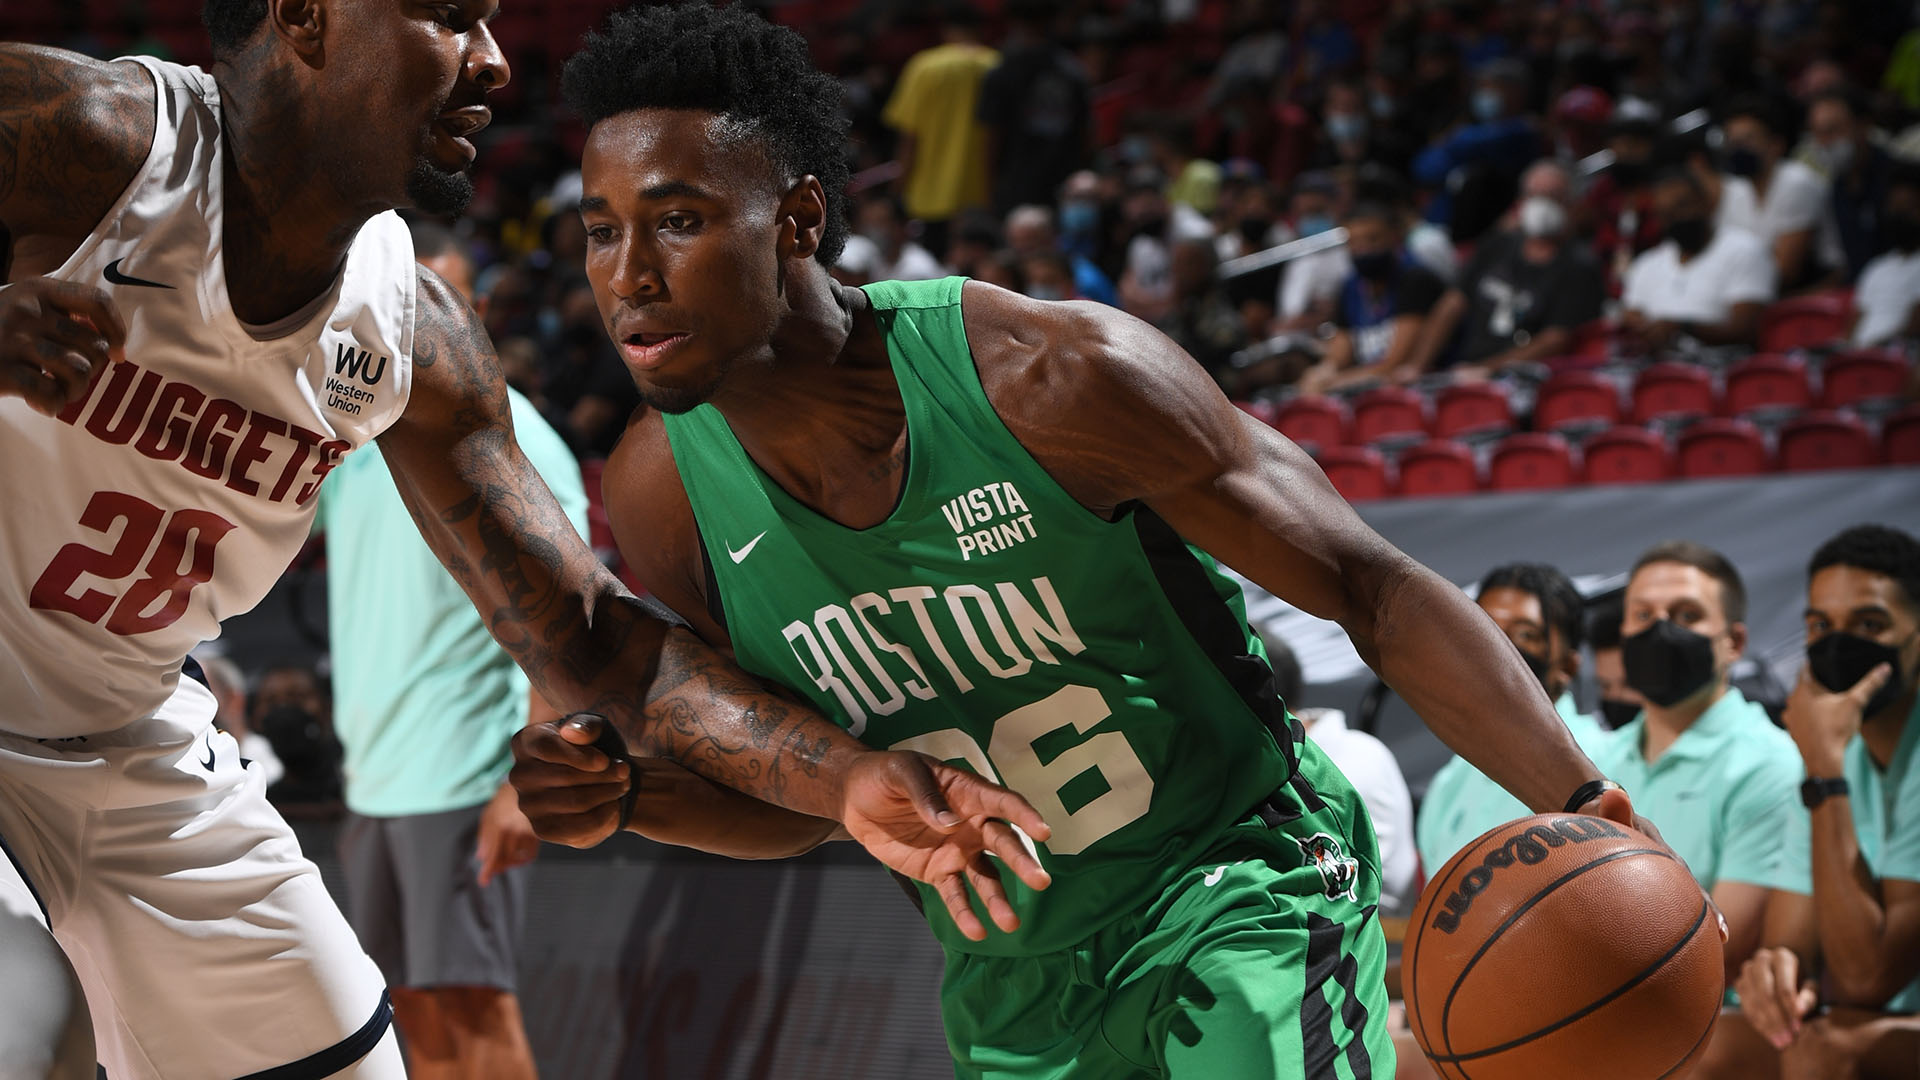 Las Vegas Summer League: Aaron Nesmith leads the way in Celtics' victory over Nuggets